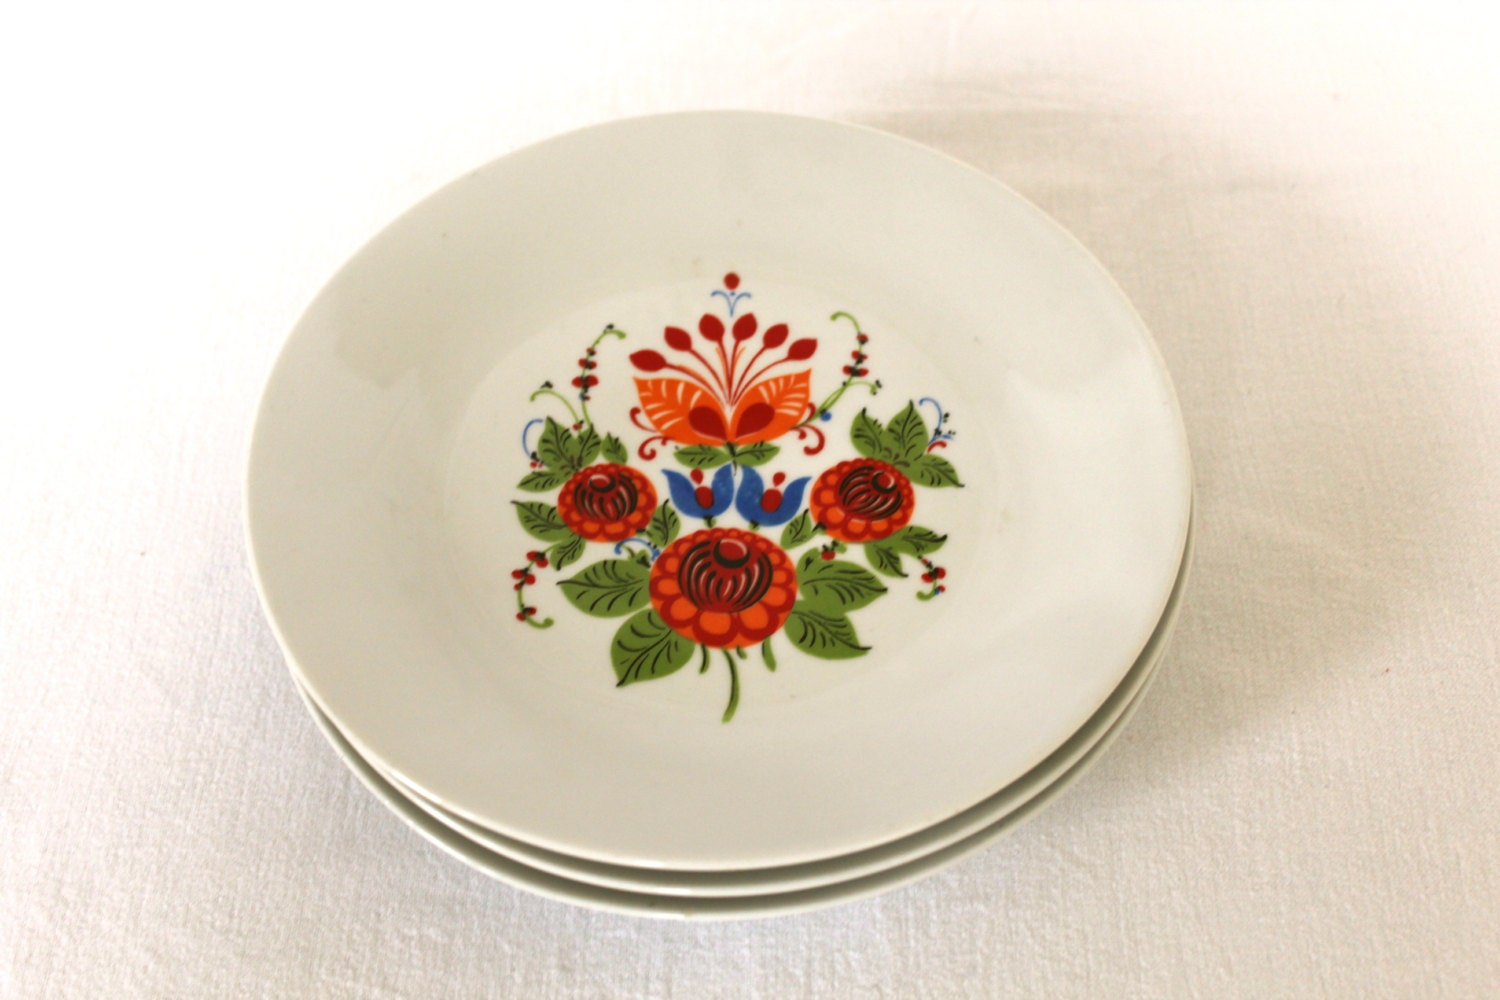 Set of three matching vintage 1970's style plates - BazaarCollective